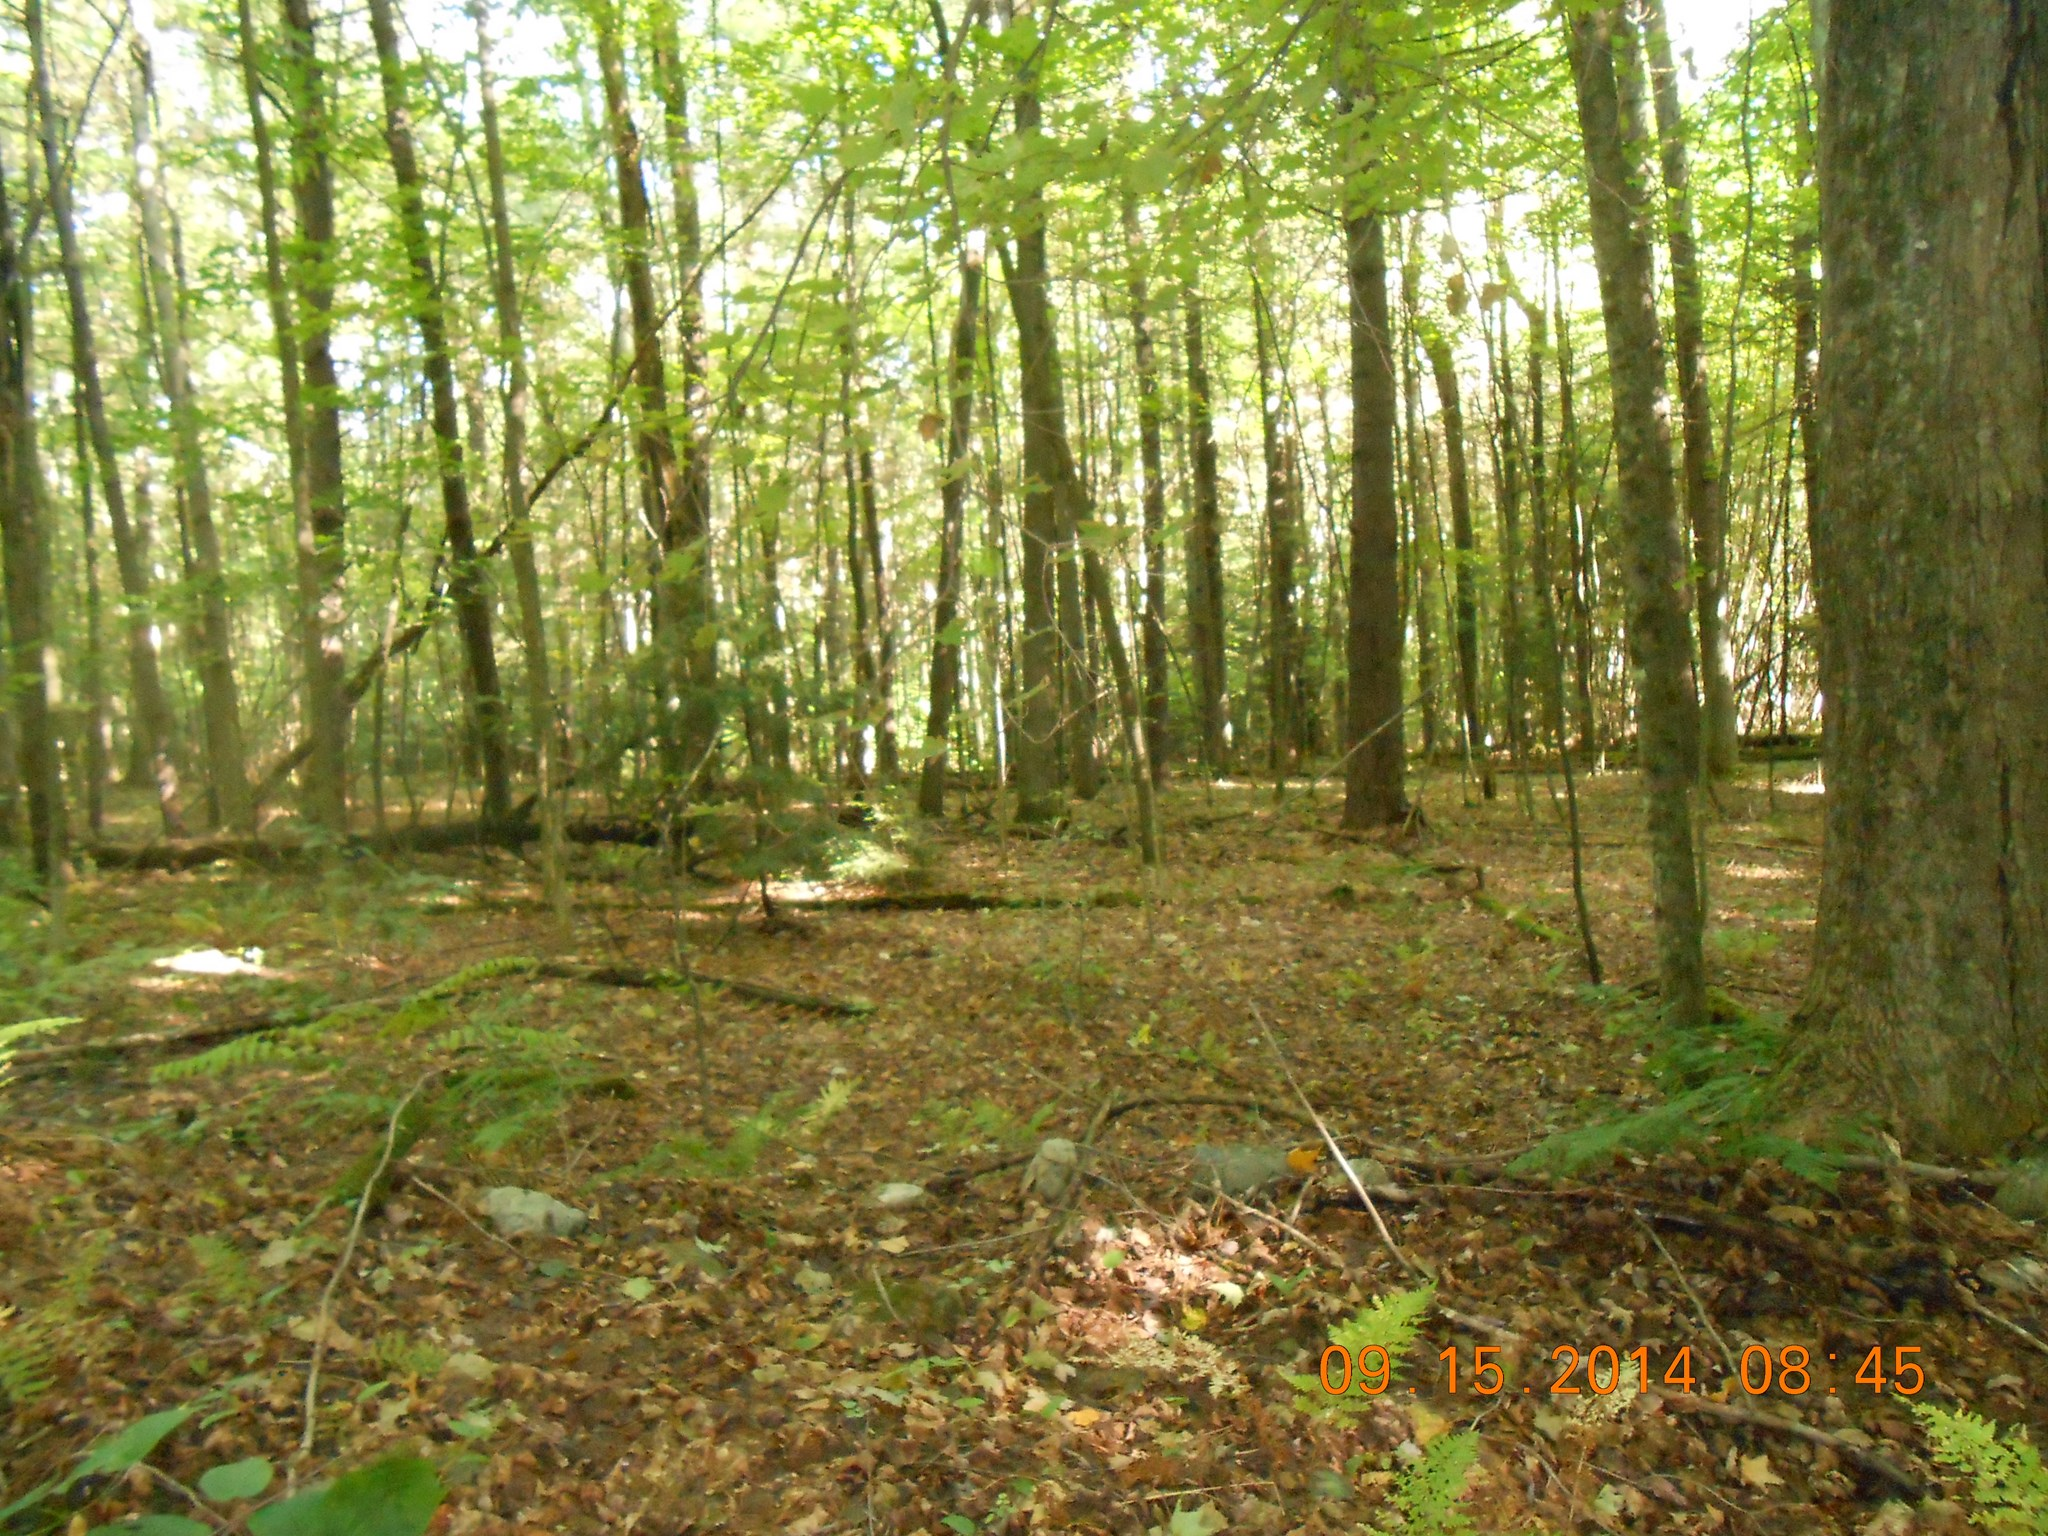 Lot 4 HERMANCE RD, Galway, NY 12074